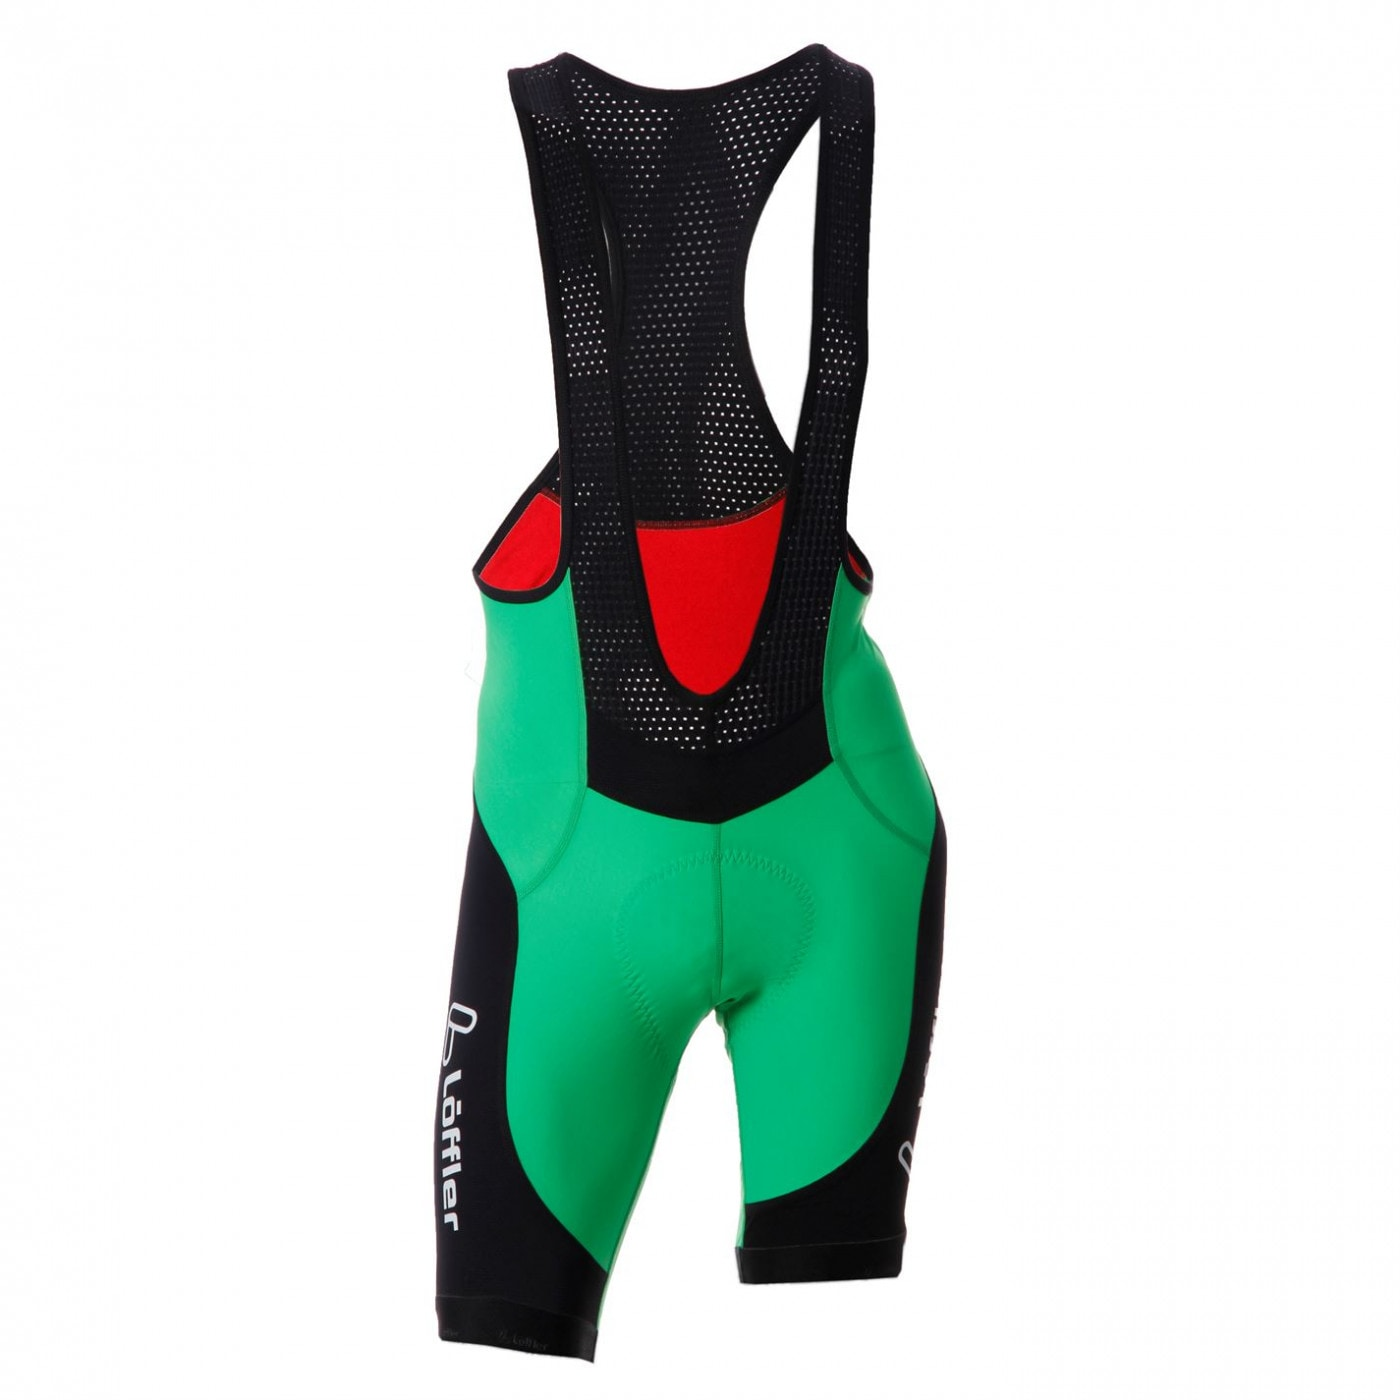 Löffler Bib Shorts Mens